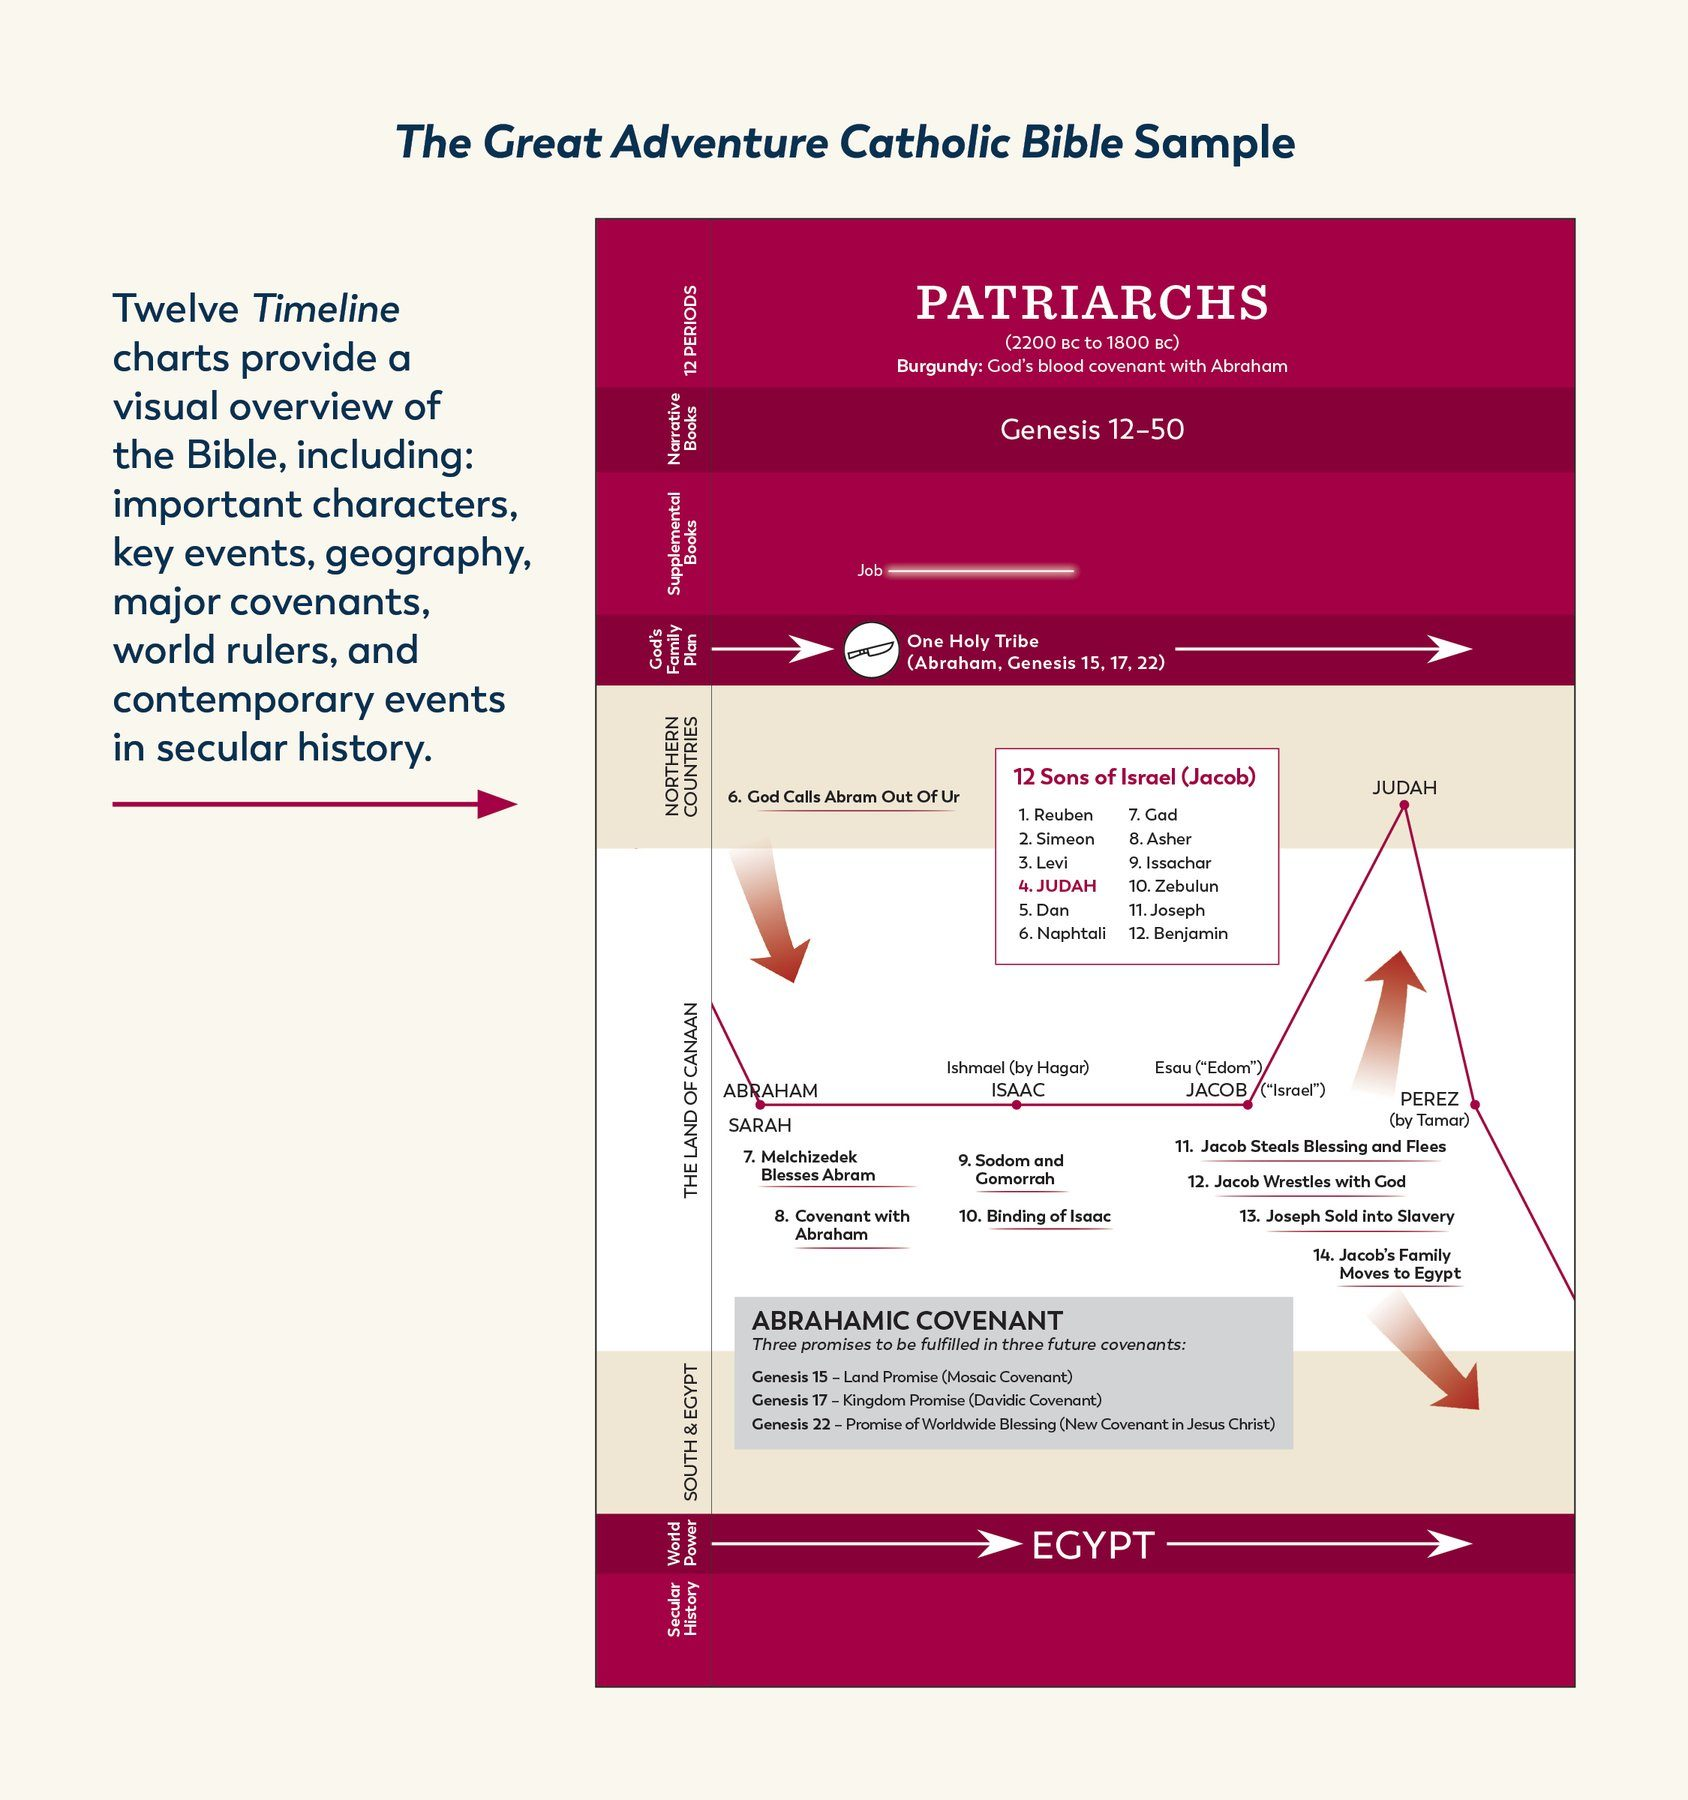 RSV, The Great Adventure Catholic Bible, leather-like